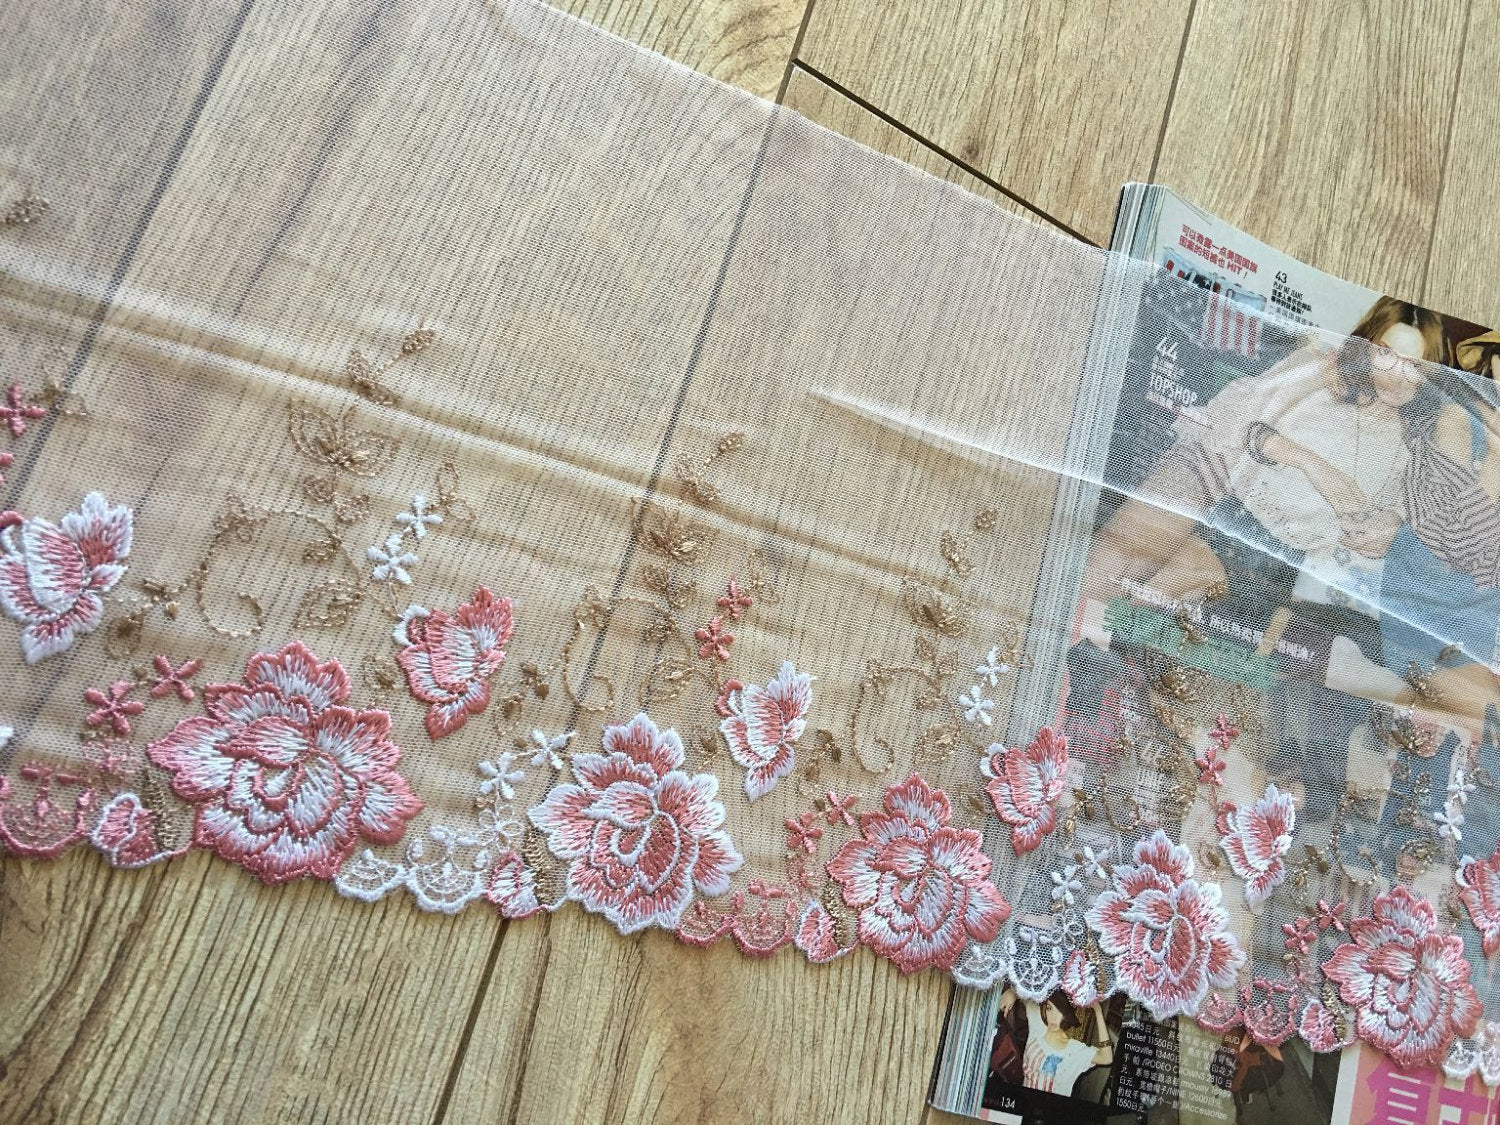 fine embroidered lace trim, off white mesh lace trim with pink peony rose, colored tulle lace trim with delicate florals